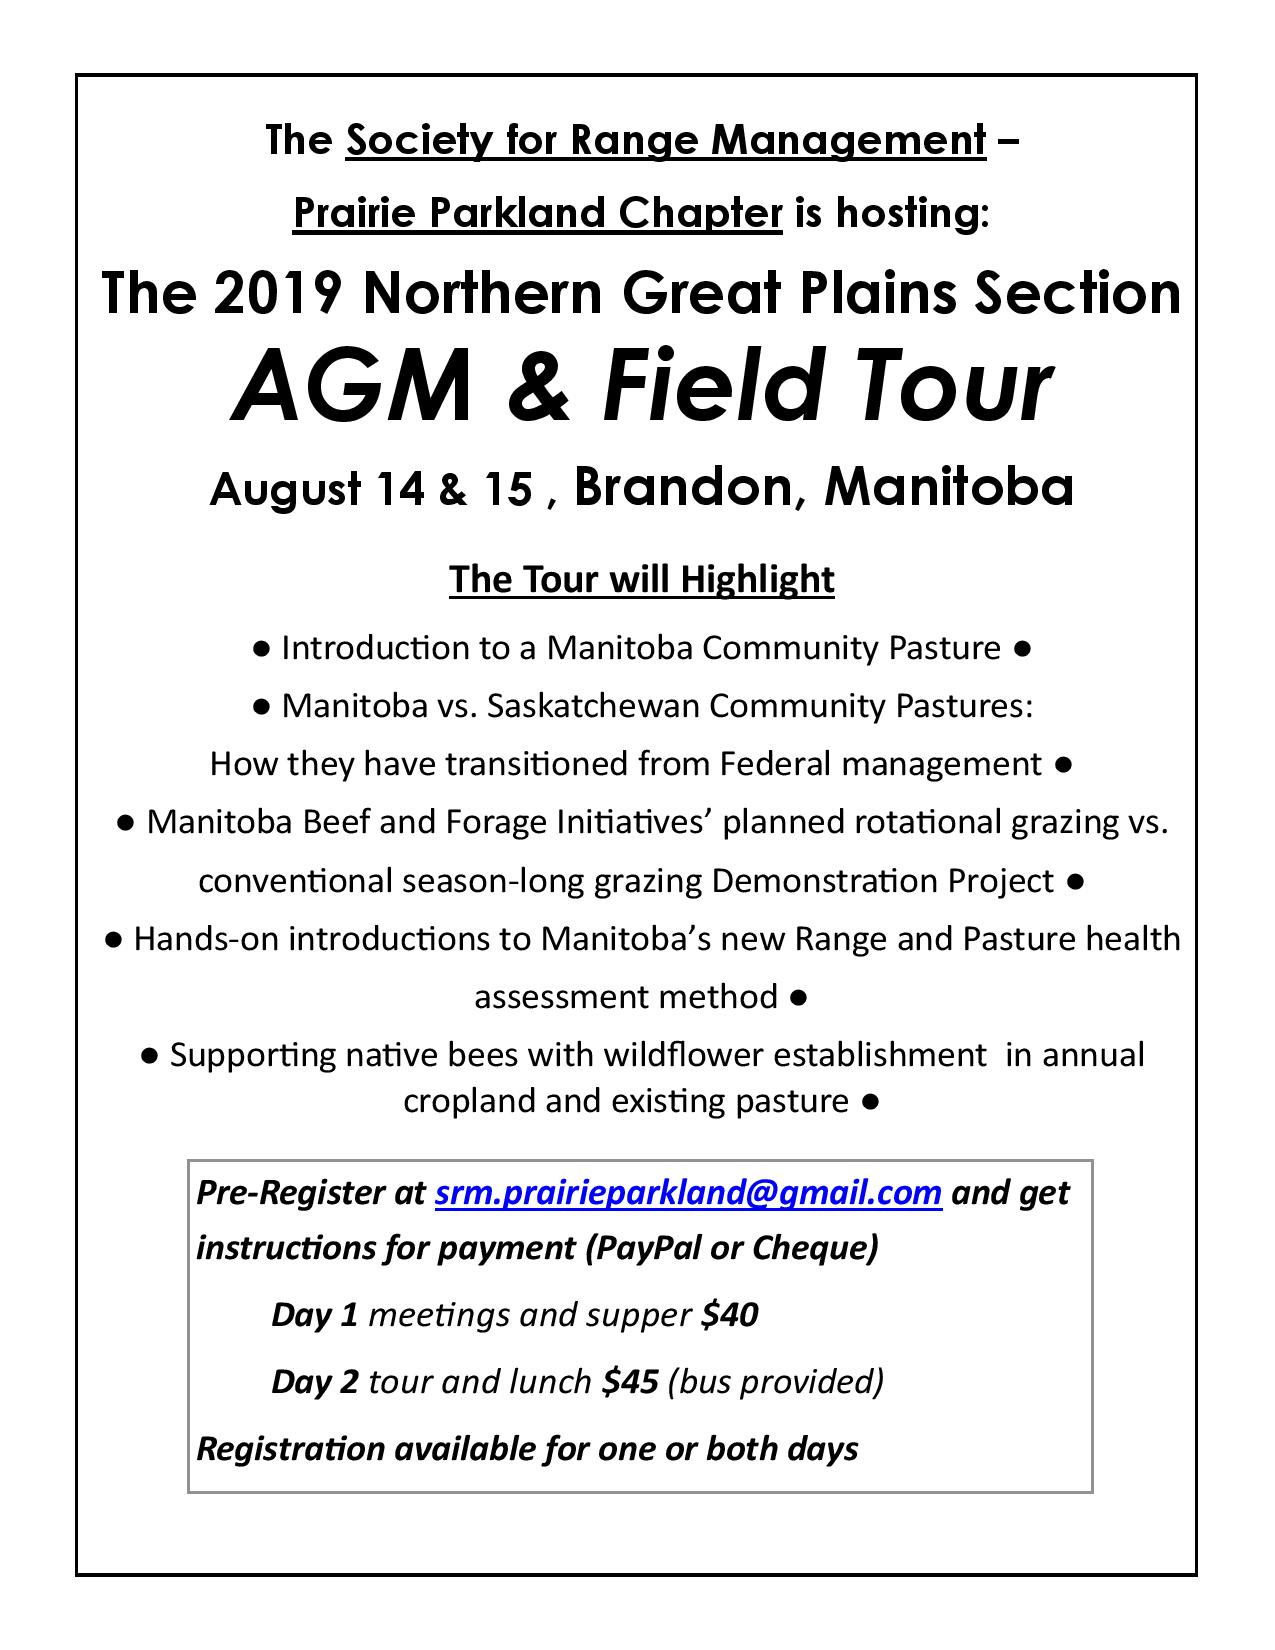 NGP Section AGM 2019_Flyer-page-001.jpg